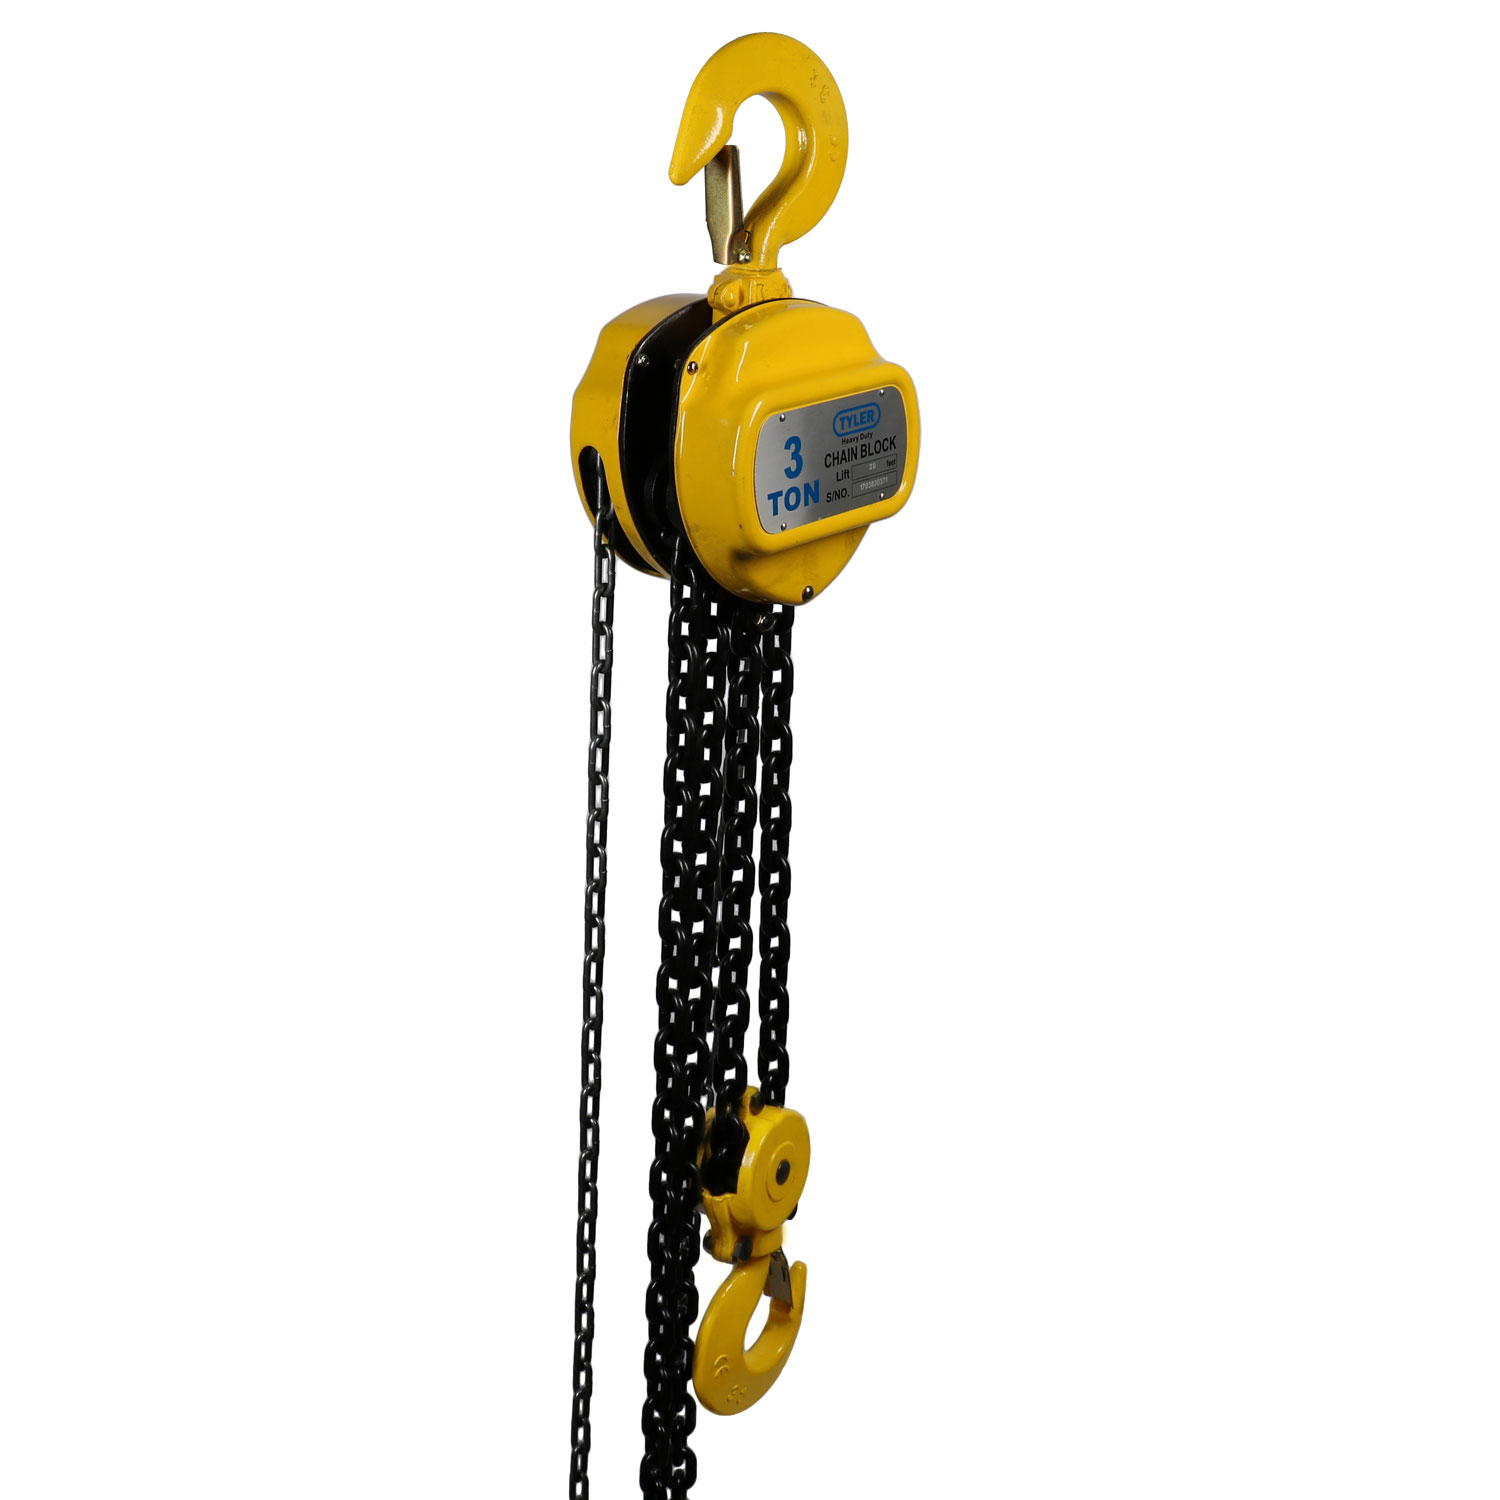 3 Ton X 20 Foot Lift, Tyler Tool Chain Hoist